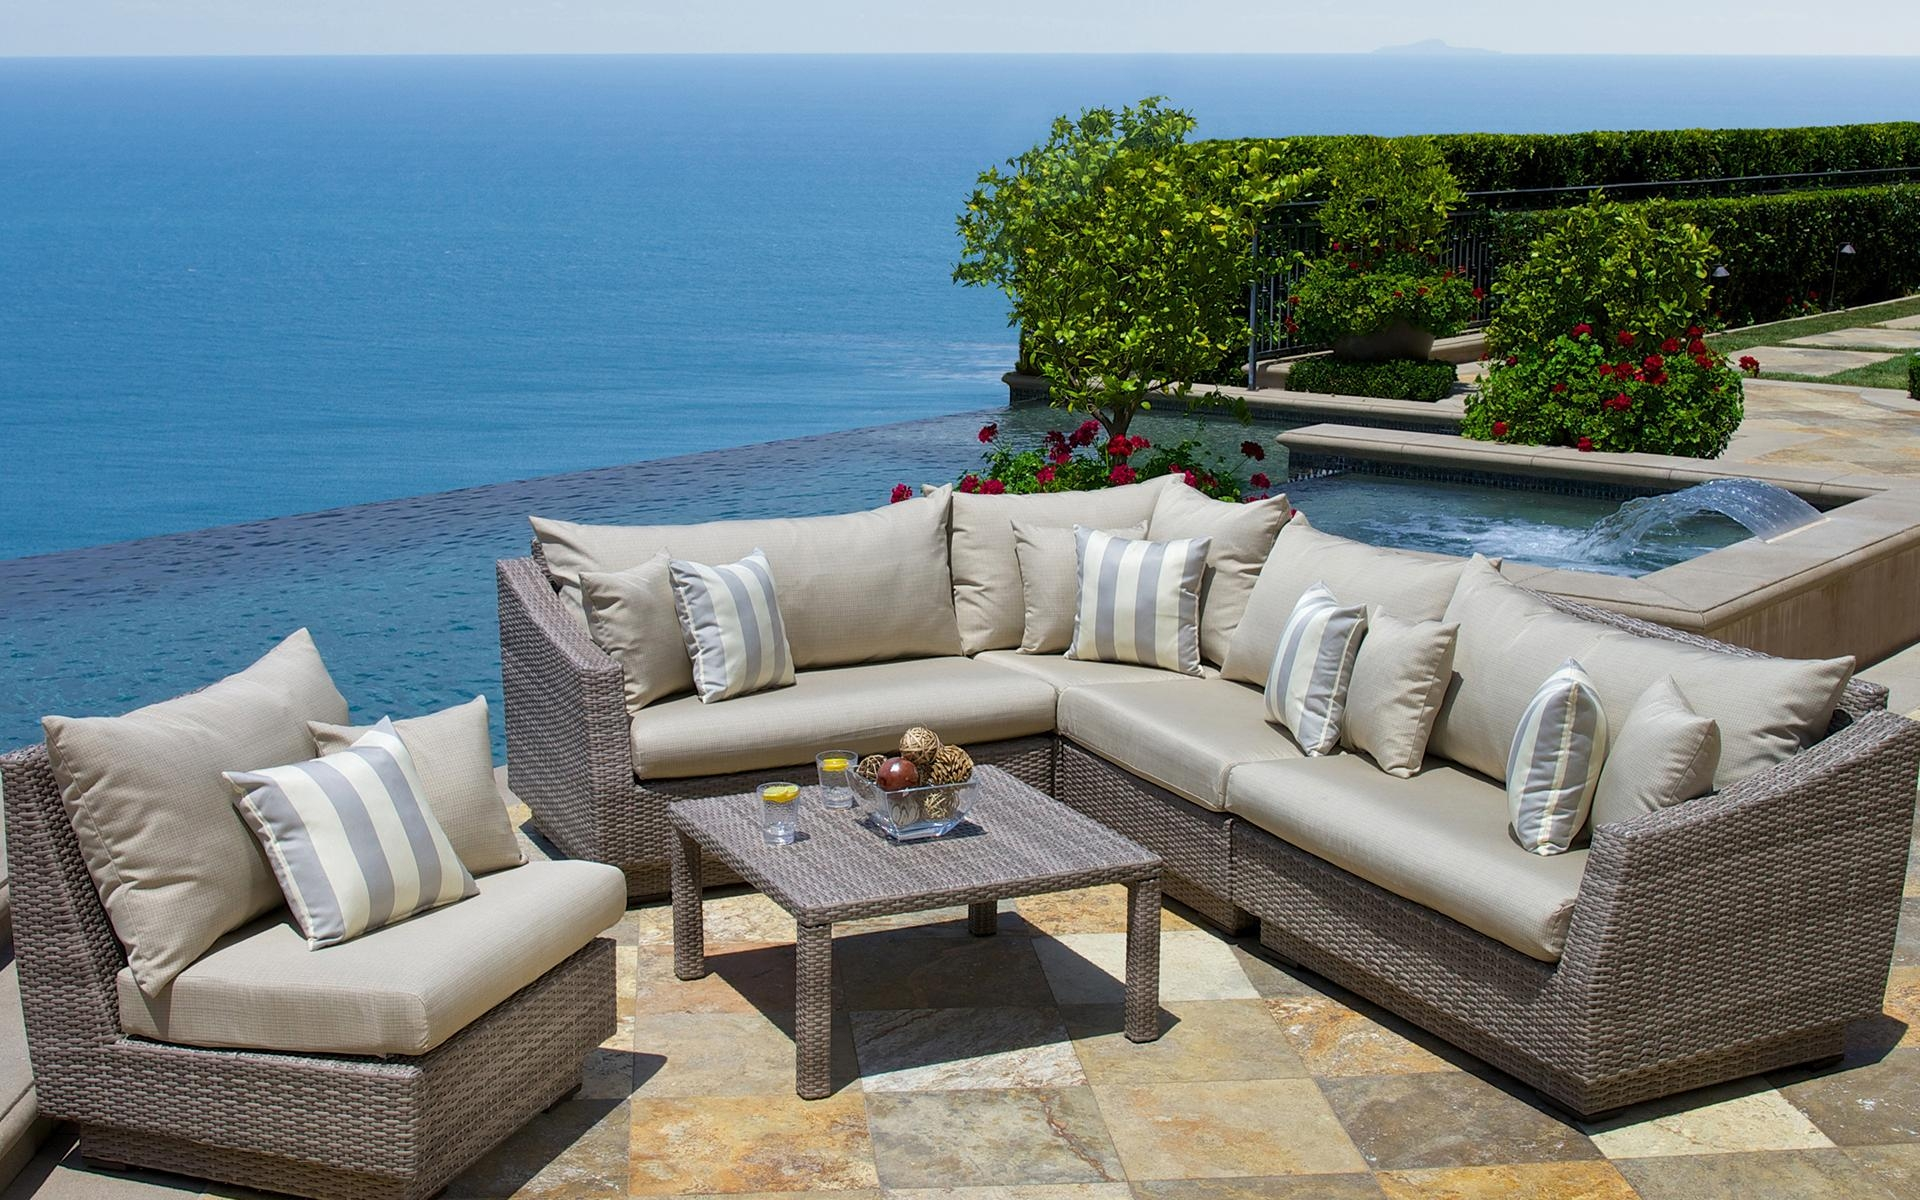 Home – The Outdoor Furniture Outlet Pertaining To Sofa Orange County (View 16 of 20)